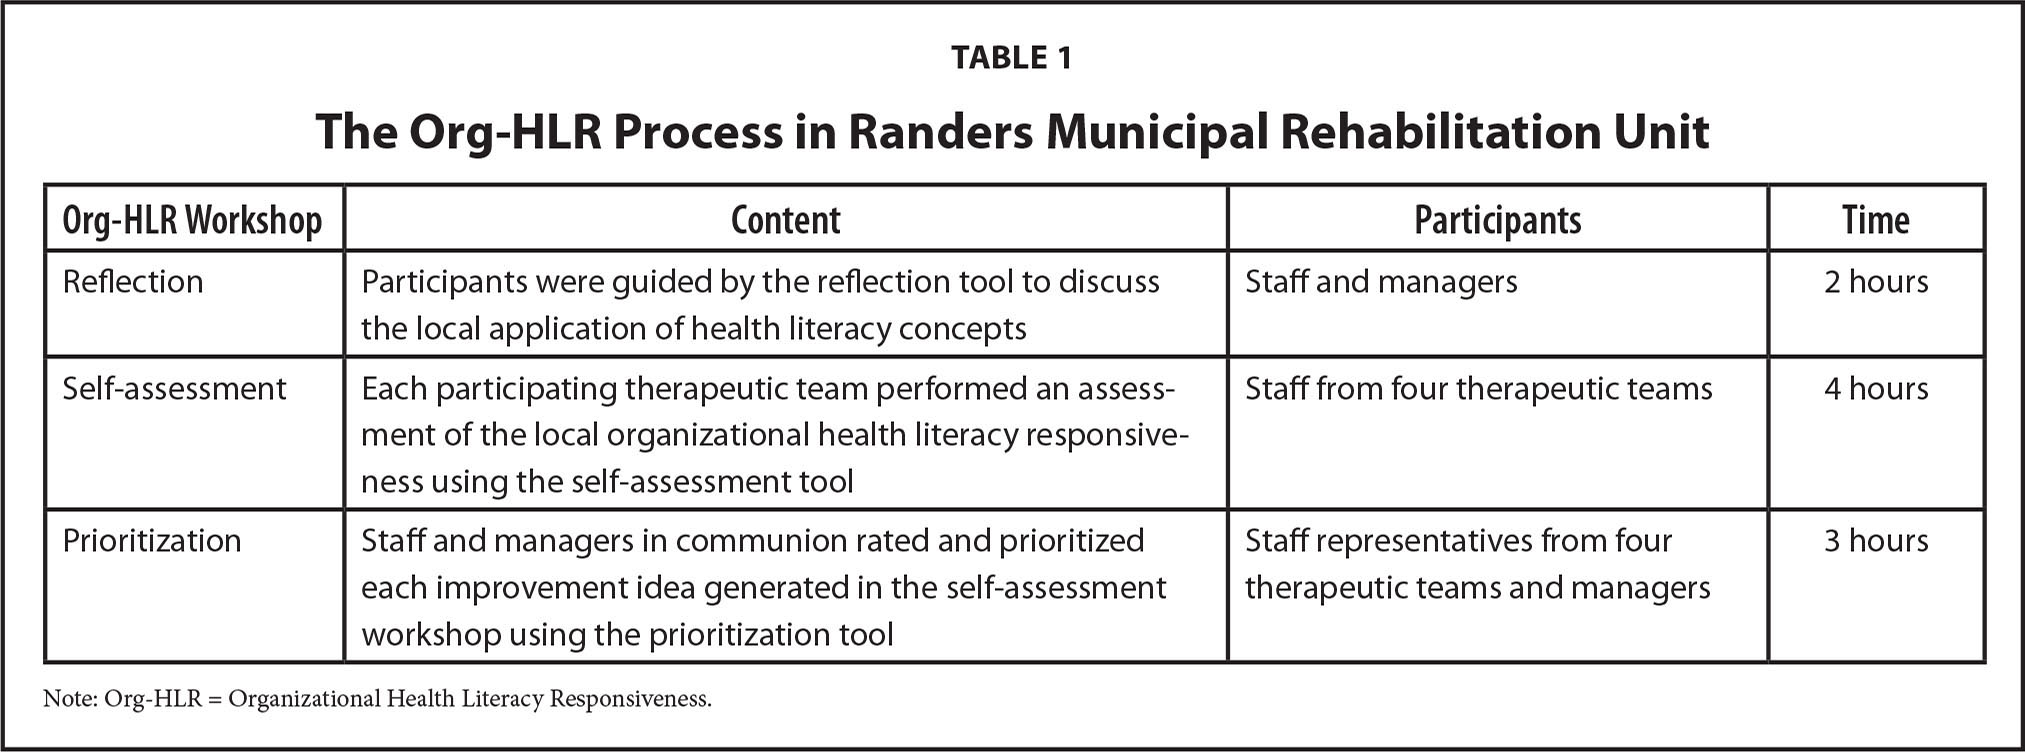 The Org-HLR Process in Randers Municipal Rehabilitation Unit